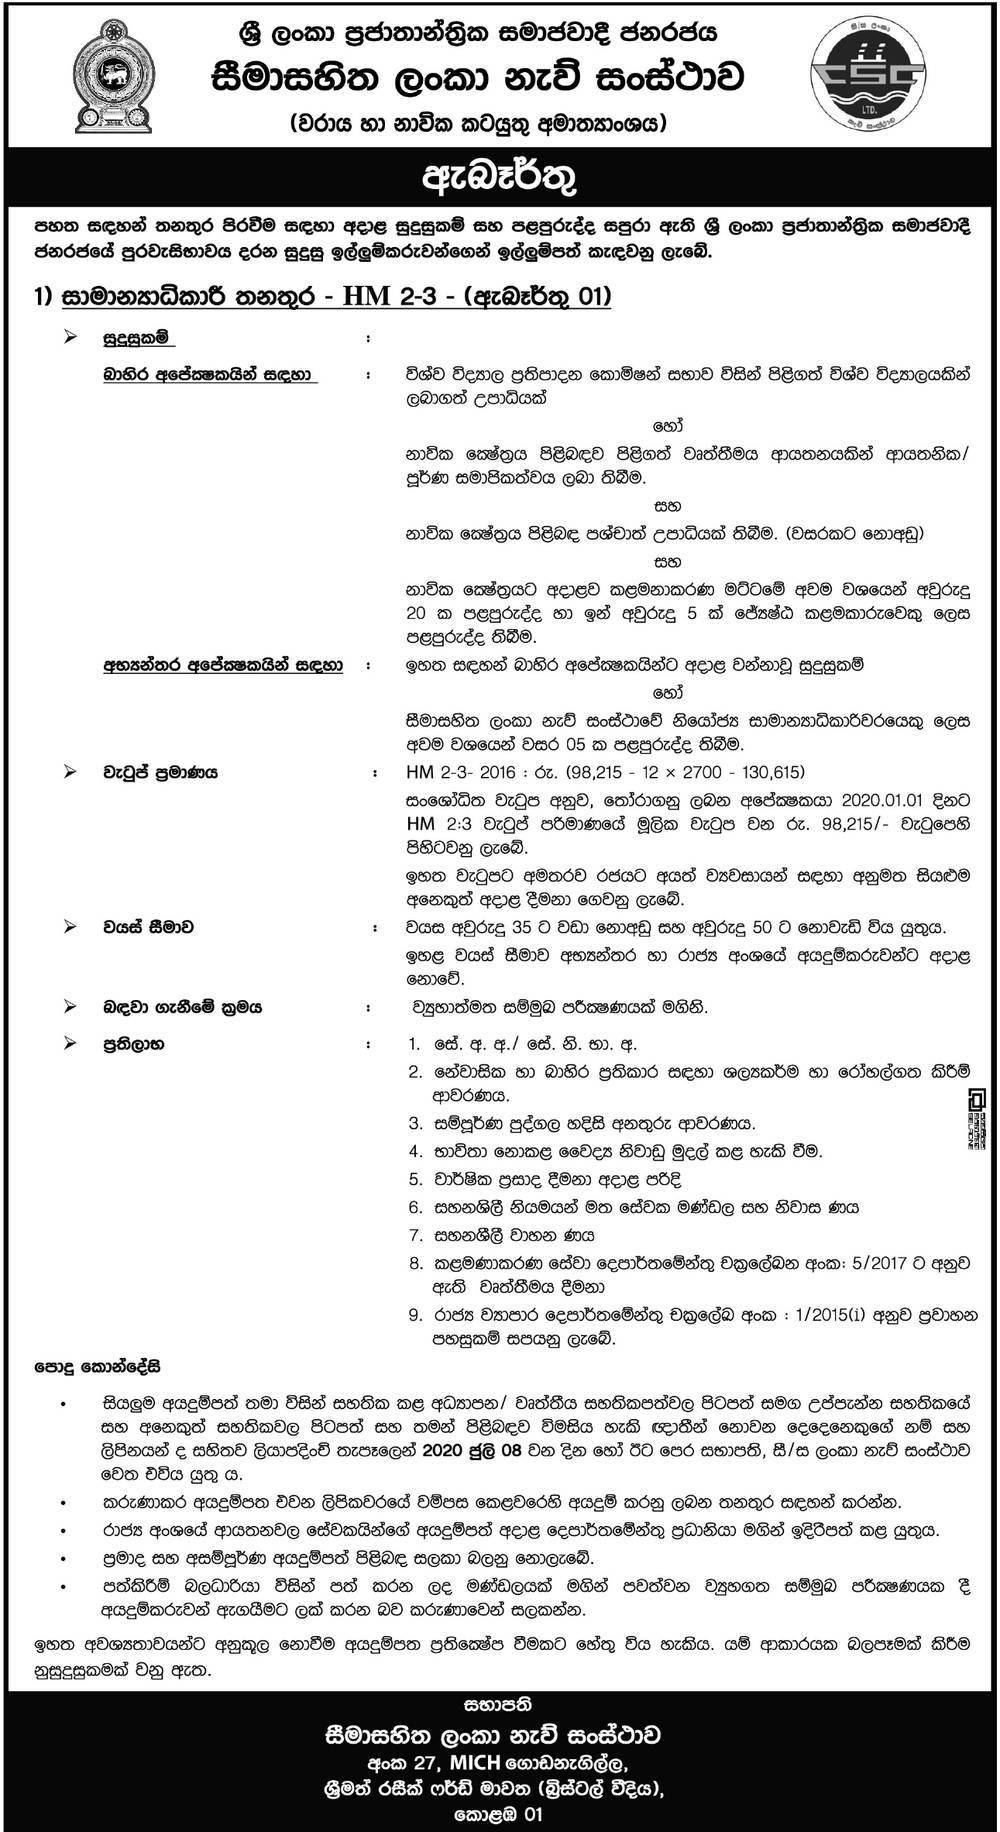 General Manager - Ceylon Shipping Corporation Ltd